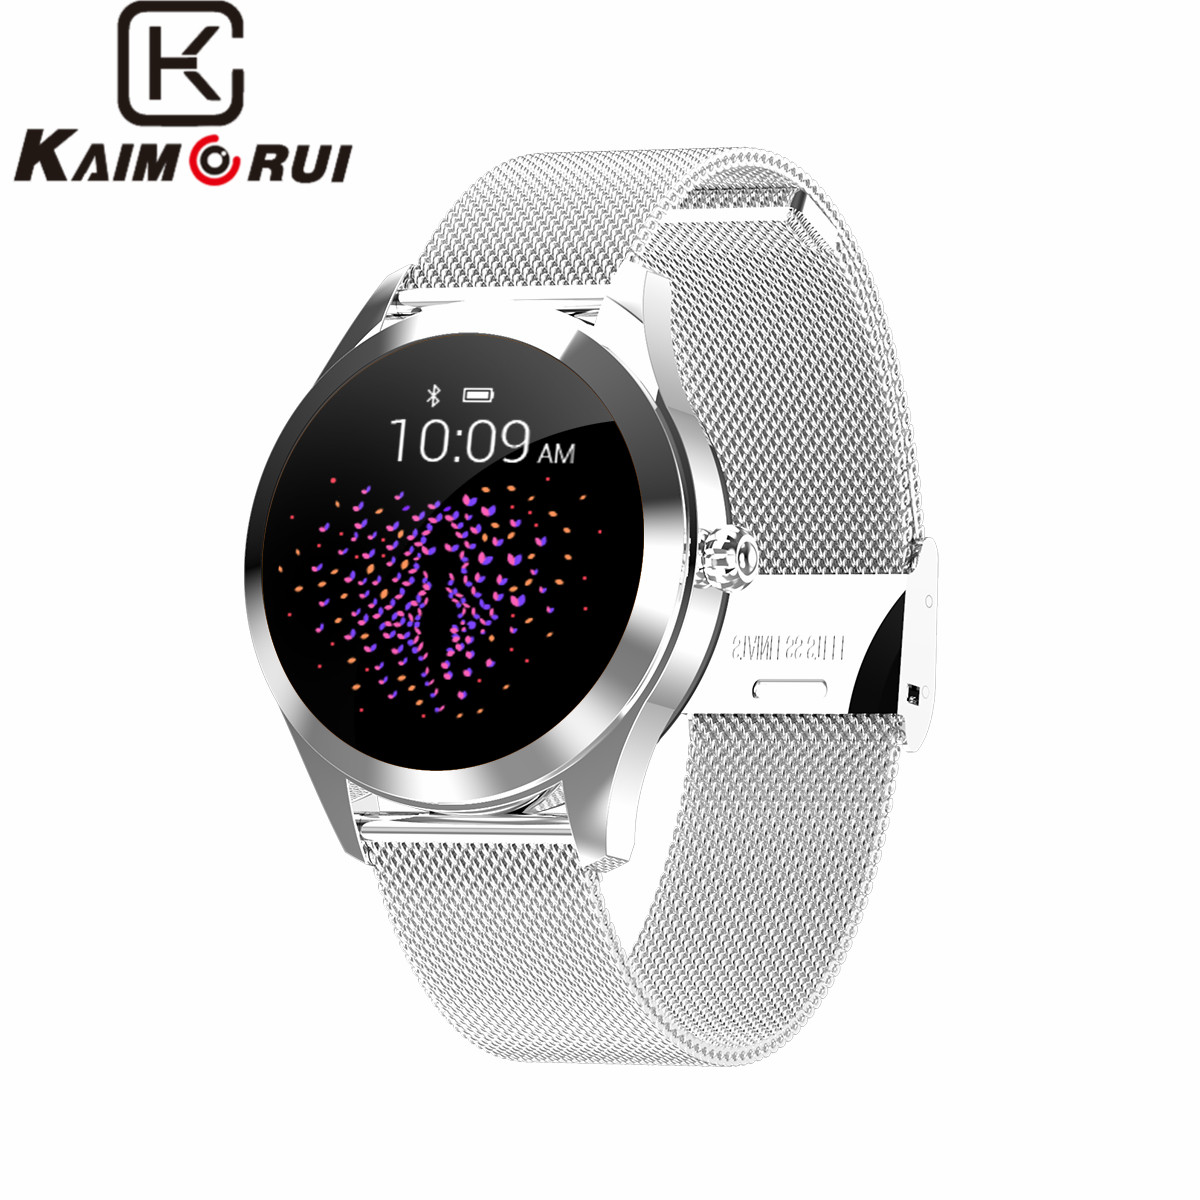 Wristband wat Women IP68 Waterproof Heart Rate Monitor Stainless Band for Xiaomi Android IOS Fitness Bracelet Watch Smart WatchWristband wat Women IP68 Waterproof Heart Rate Monitor Stainless Band for Xiaomi Android IOS Fitness Bracelet Watch Smart Watch